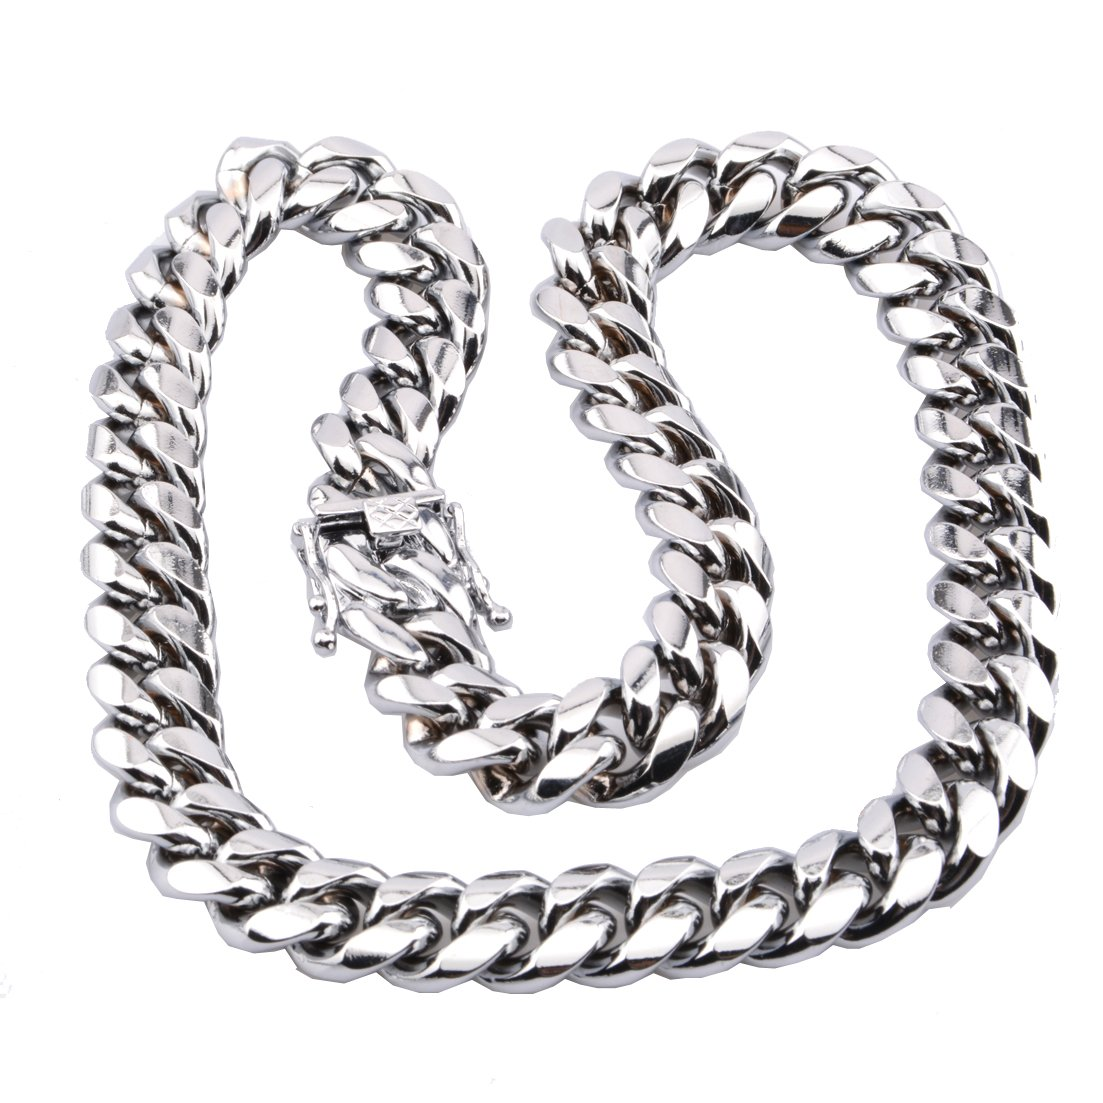 FANS JEWELRY Mens Silver Tone Cut Miami Curb Cuban Chain 316L Stainless Steel Necklace Bracelet